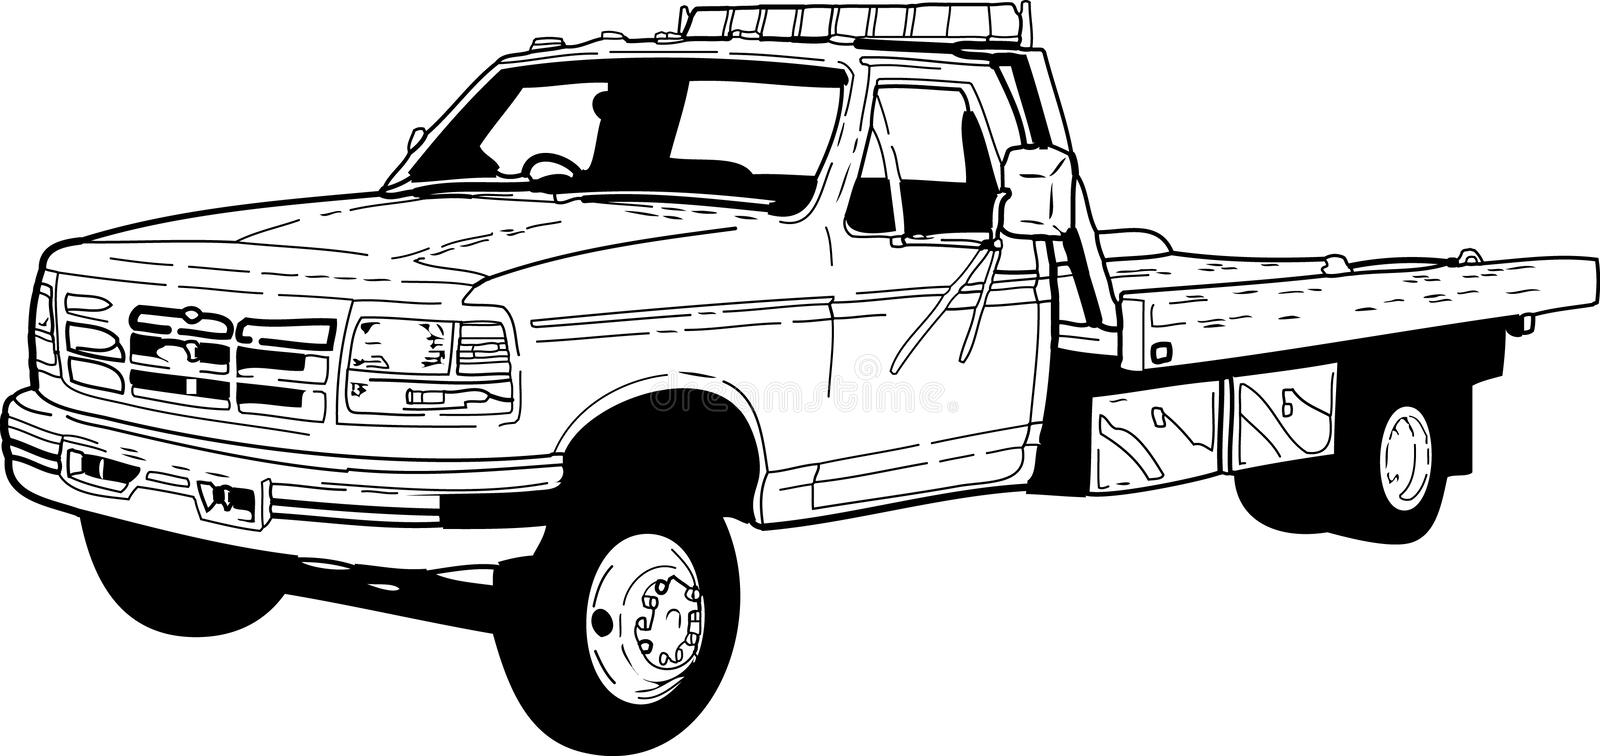 TOW TRUCK. PICKUP TOW TRUCK WITH FLAT BED 1 COLOR ILLUSTRATION